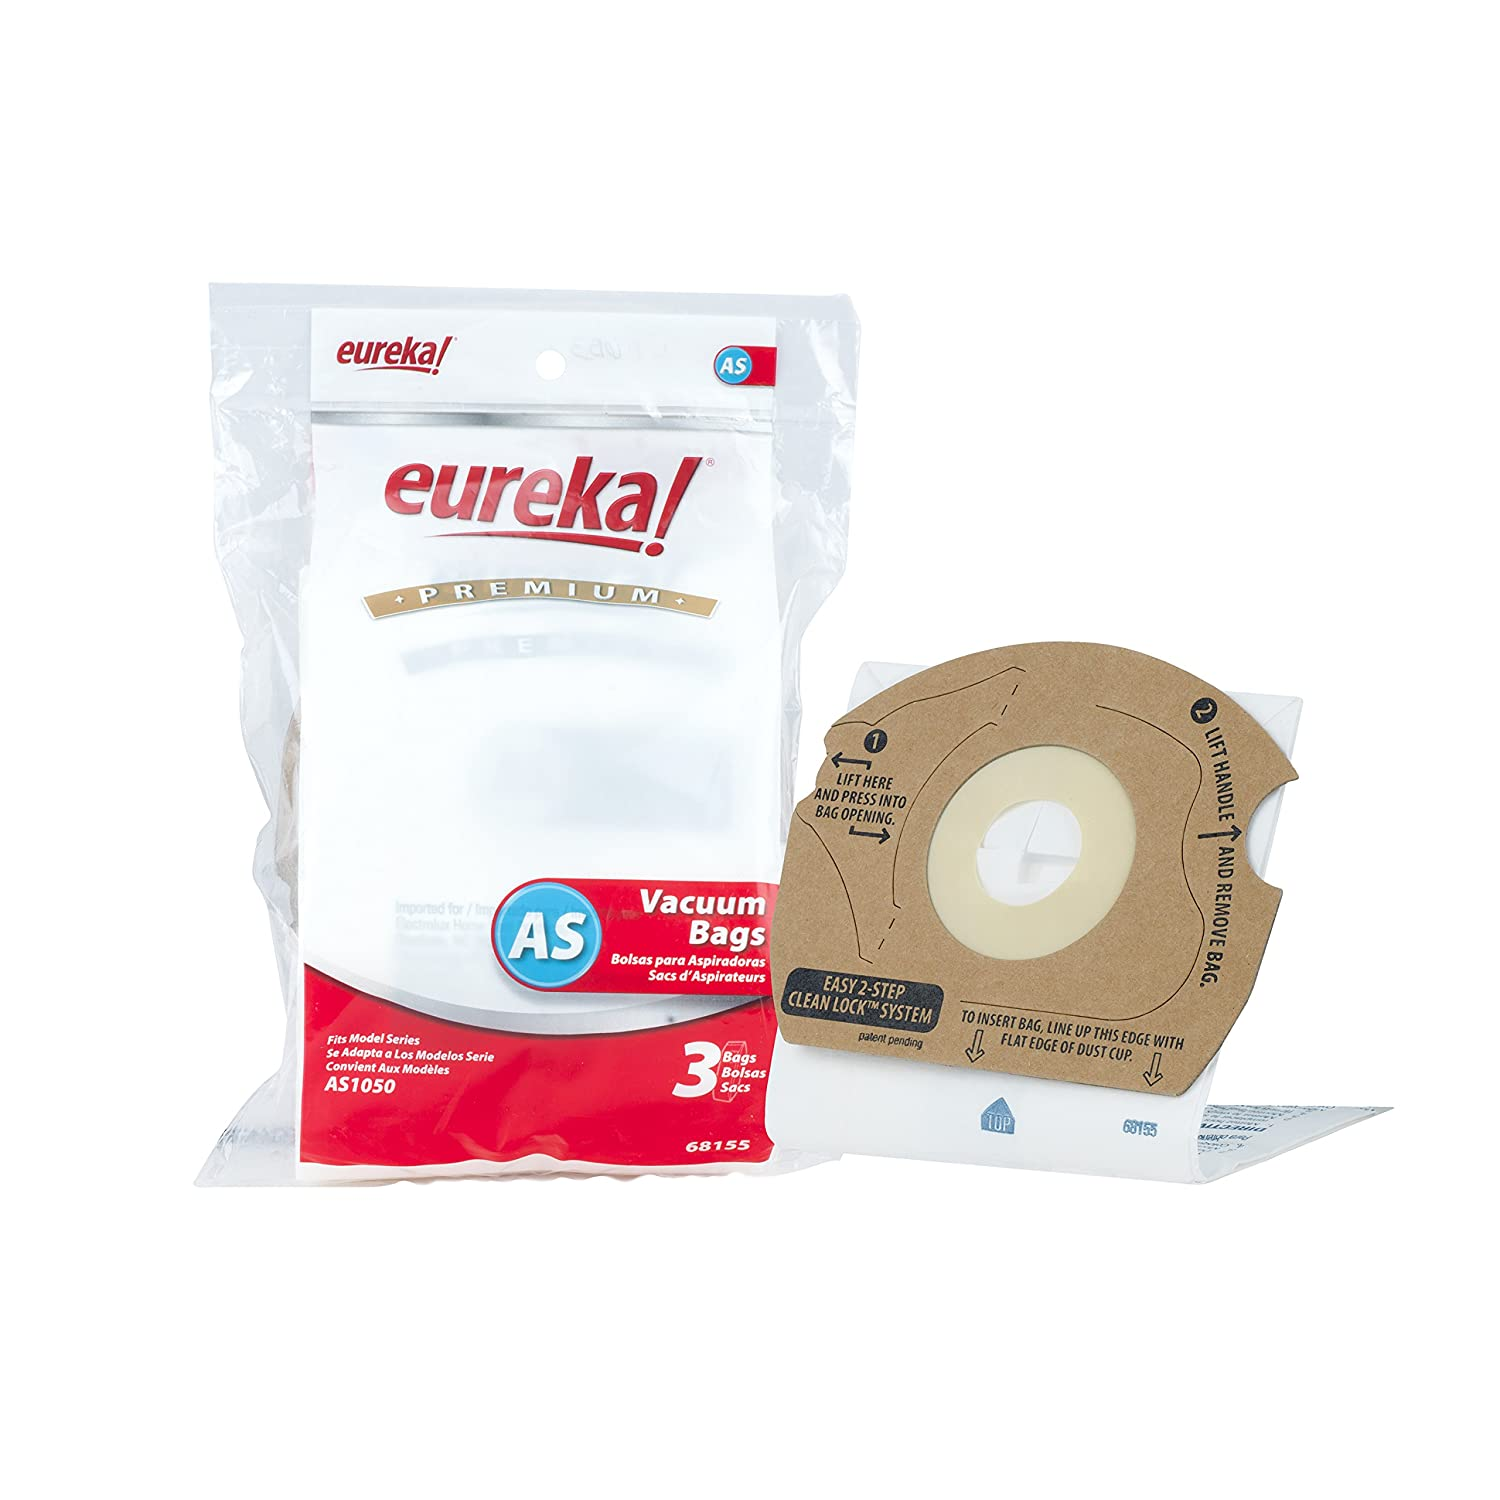 Genuine Eureka AS Premium Filtration Vacuum Bag 68155 - 3 bags